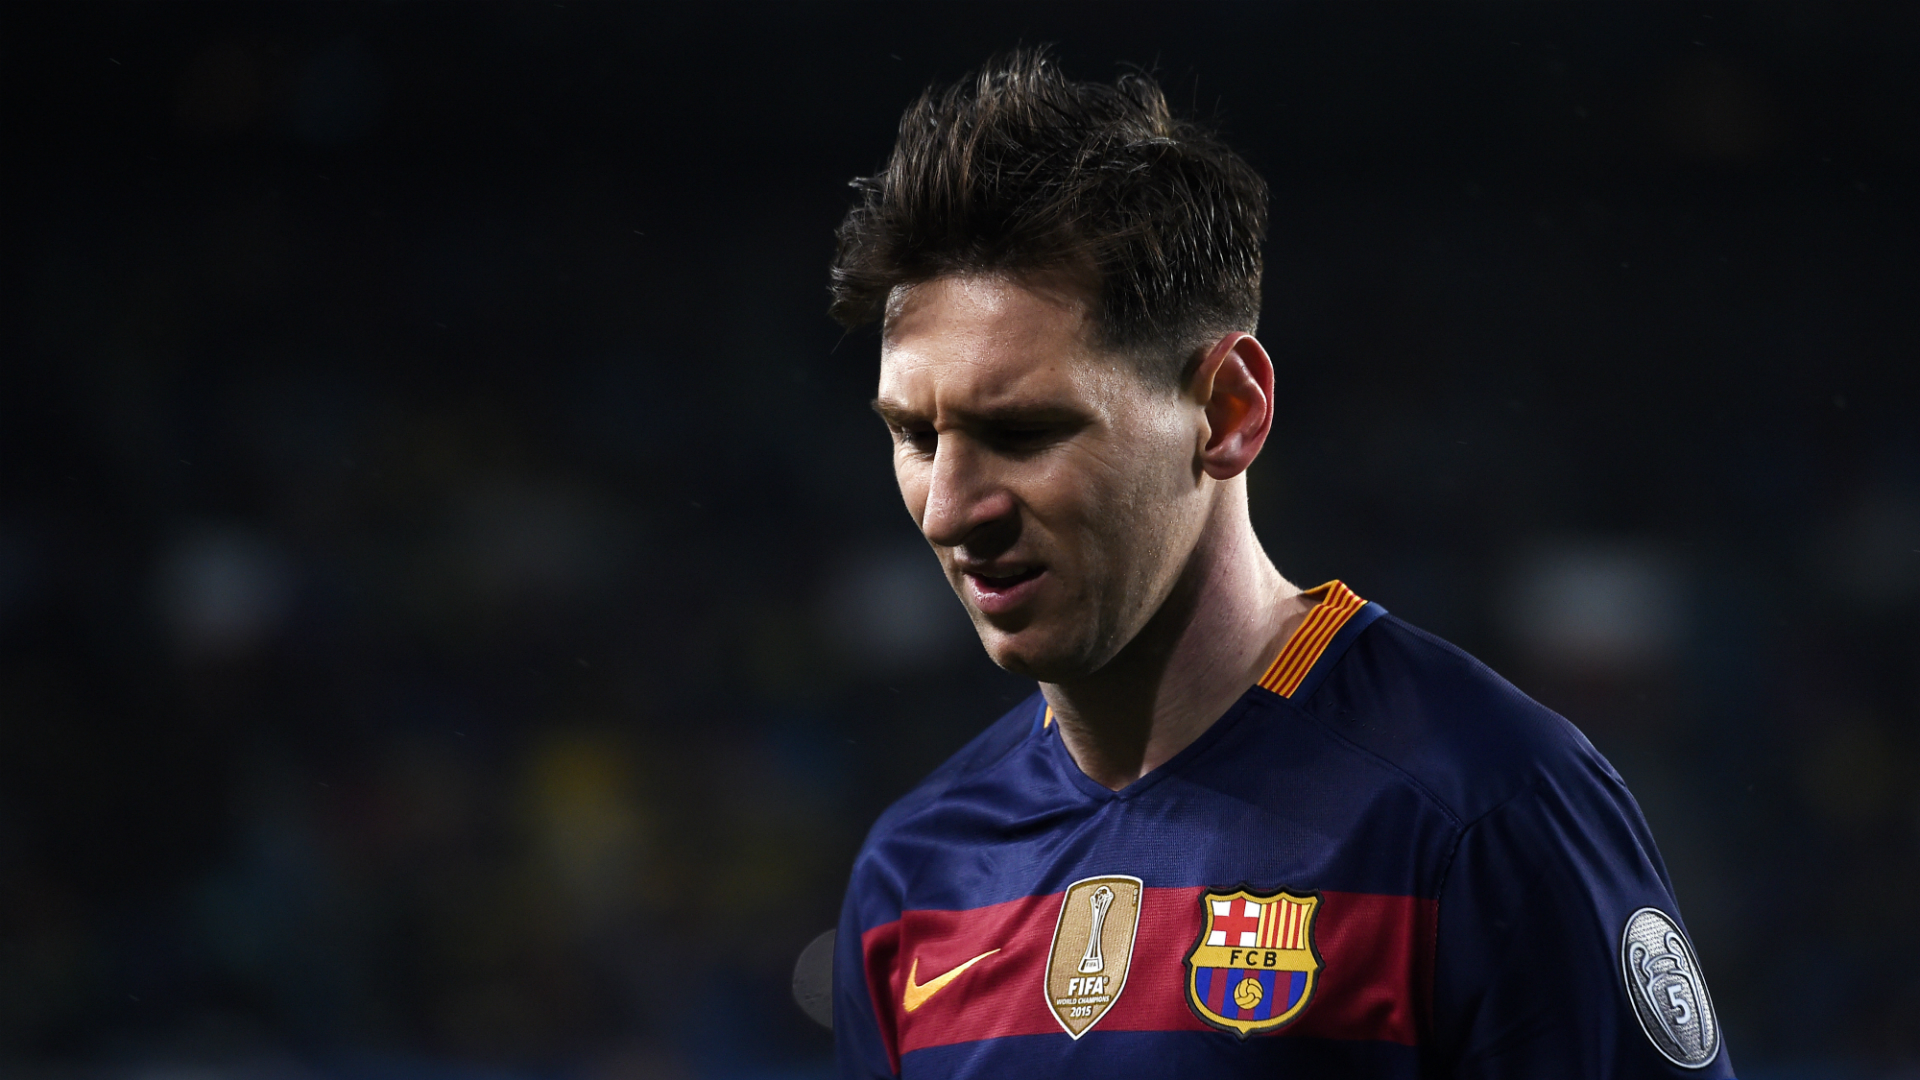 essay about messi and ronaldo Essay writers online jobs houston tx coursework for audit only gabriel: november 20, 2017 just wrote a very offensive essay on teen pregnancy.